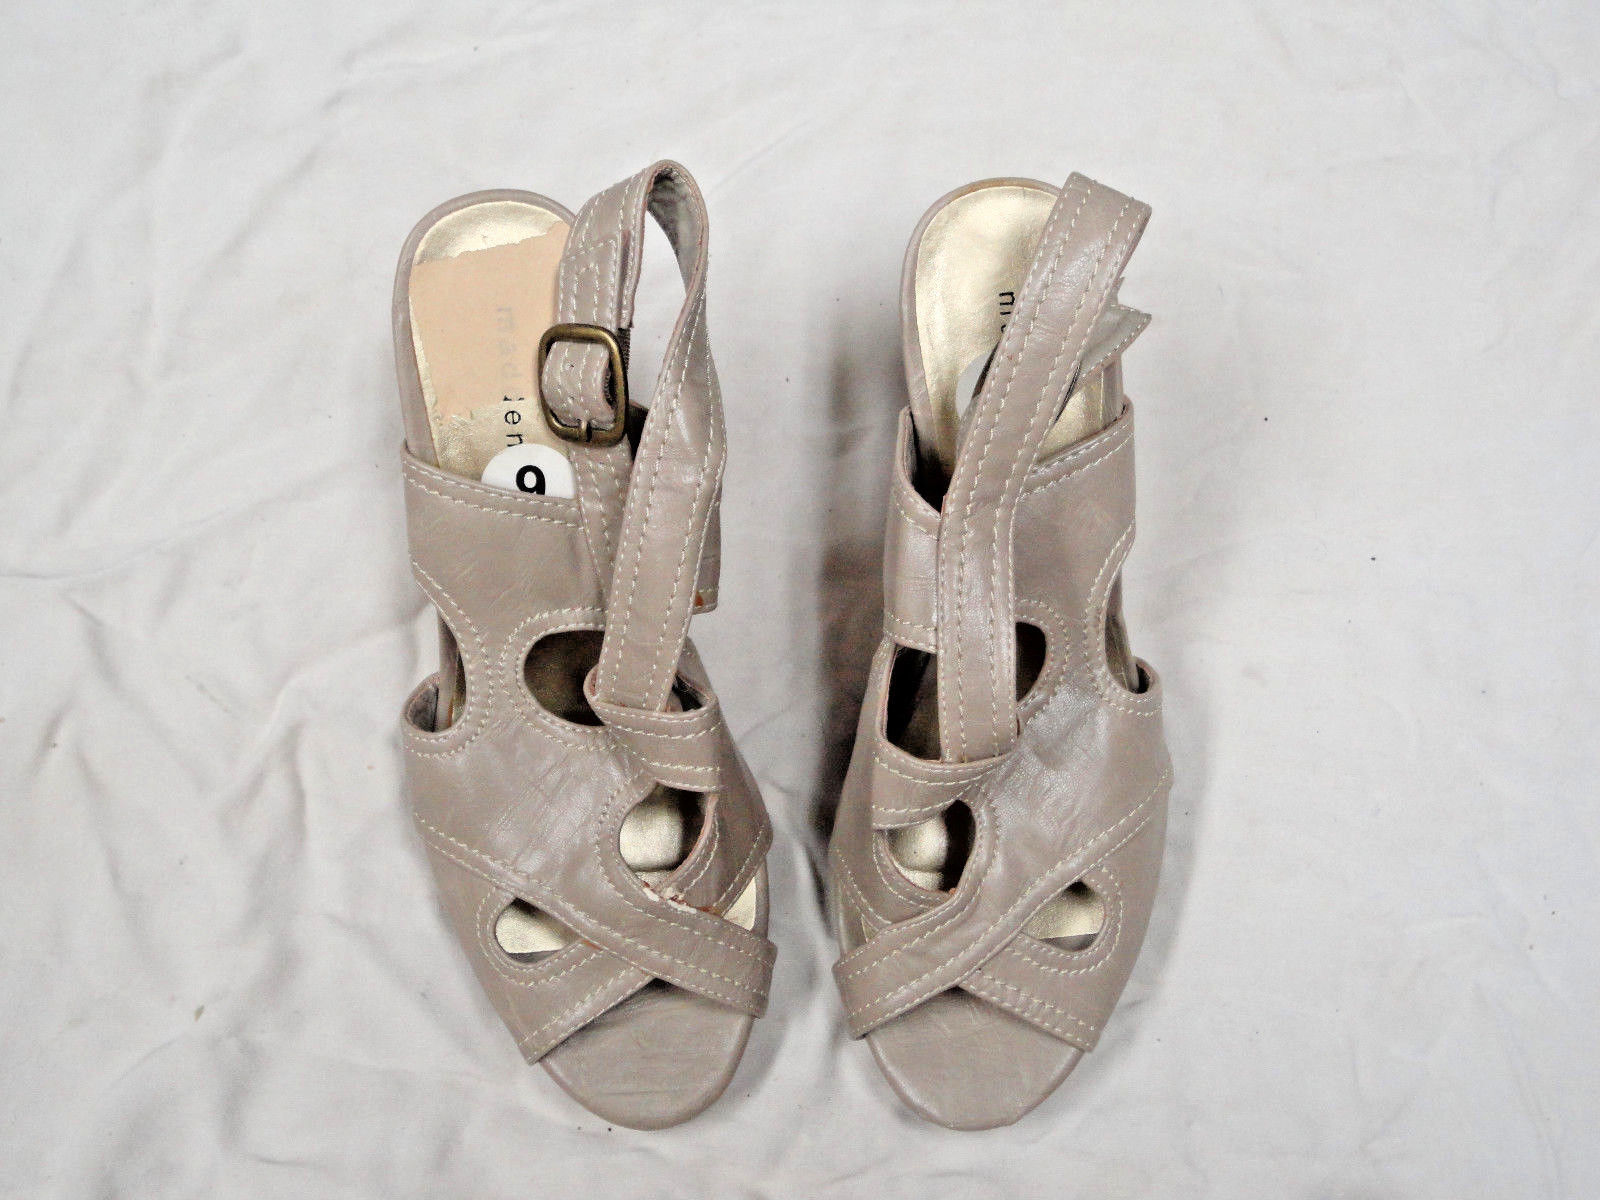 Primary image for Madden Girl taupe colored sandal   Size 9  Adjustable Buckle